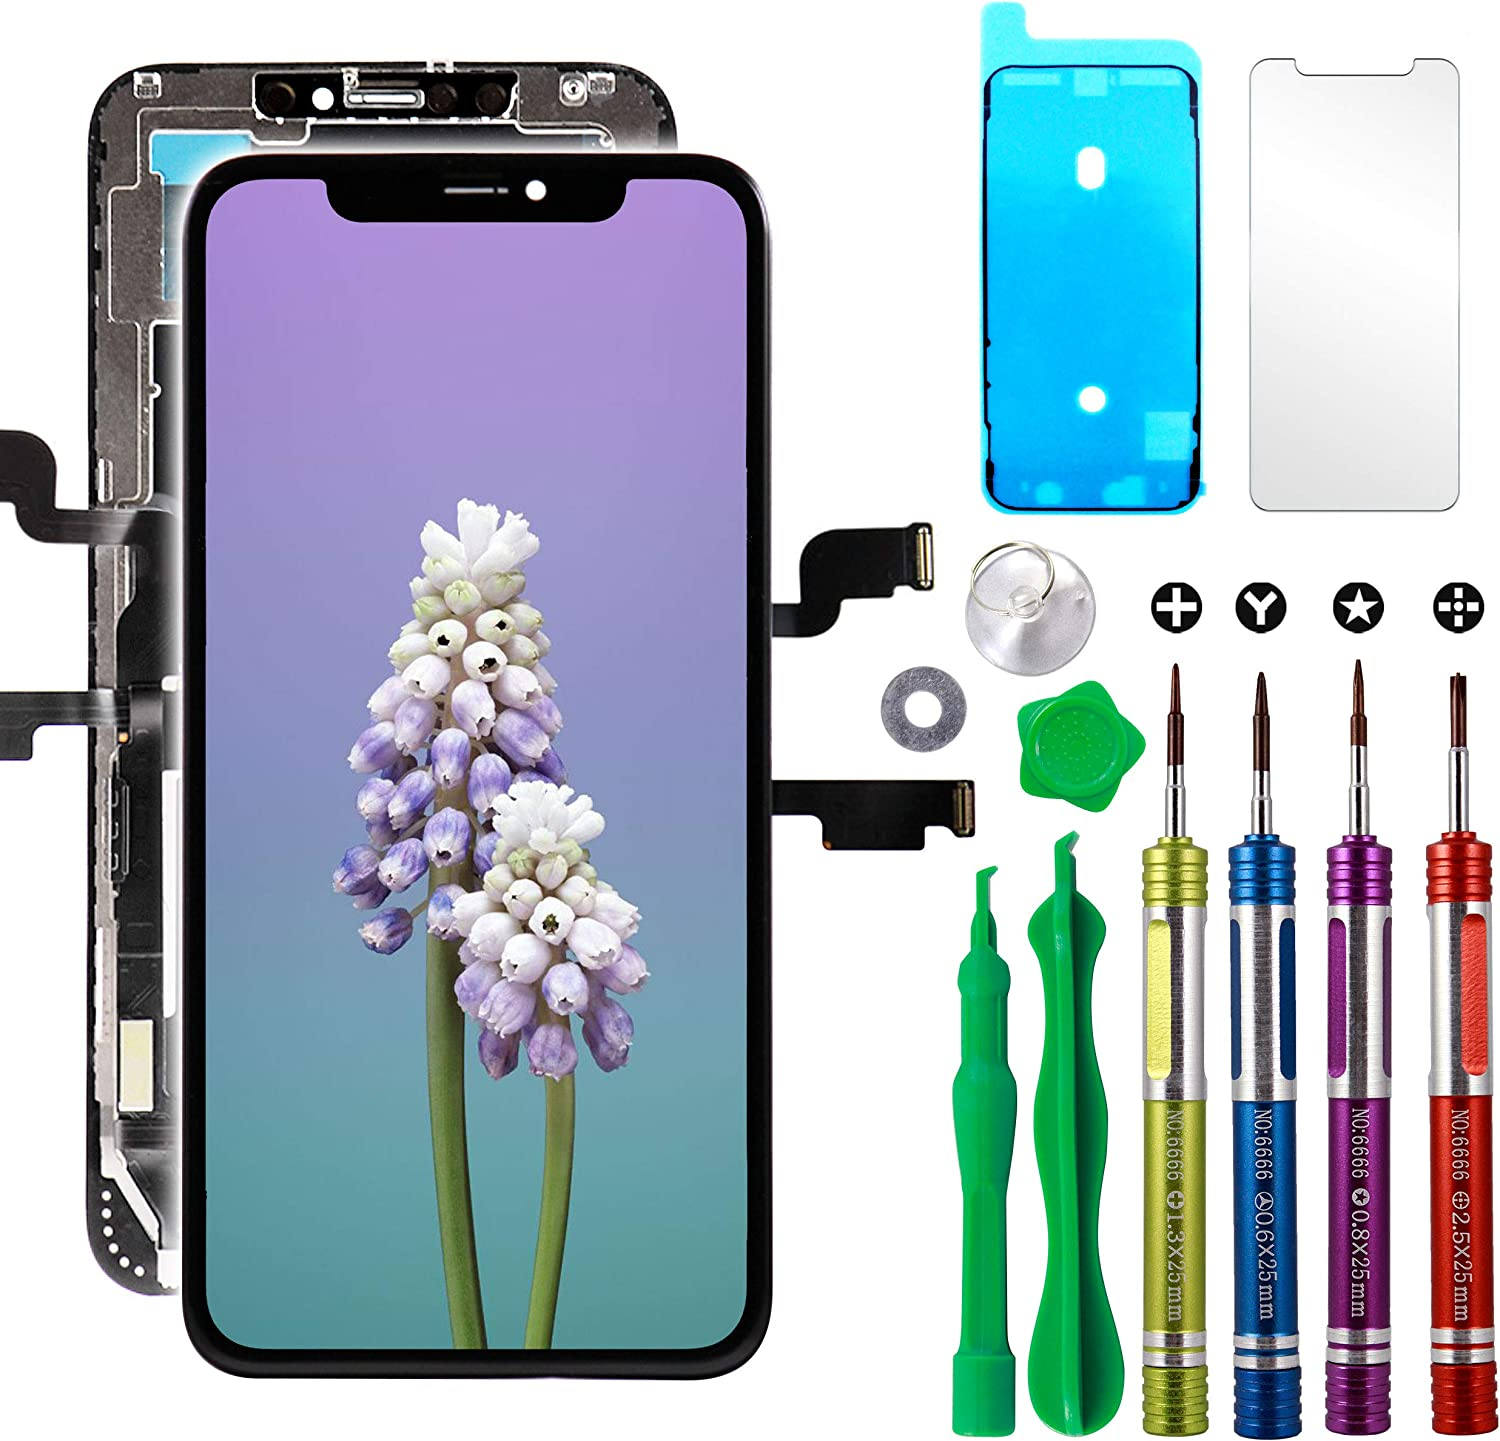 Hard OLED Screen Replacement for iPhone Xs Max 6.5 inch (Model A1921, A2101, A2102, A2103, A2104) Touch Screen Display Digitizer Repair Kit Assembly with Complete Repair Tools XS Max